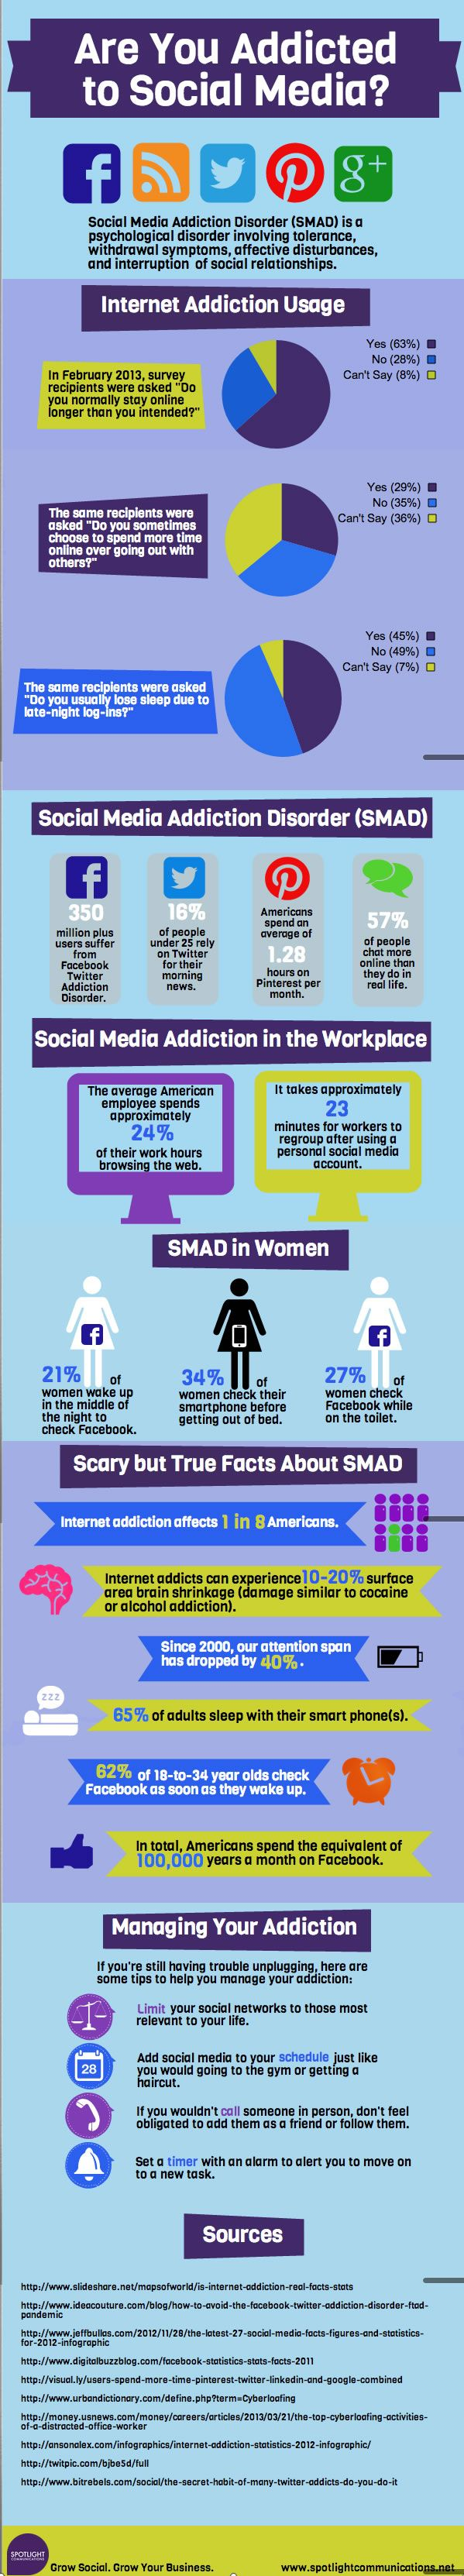 Social Media Addiction Disorder (SMAD) is a serious psychological disorder involving tolerance, withdrawal symptoms, affective disturbances, and interruption of social relationships. The folks at spotlightcommunications.net have put together this infographic explaining the scary and shocking facts of Social Media Addiction Disorder.